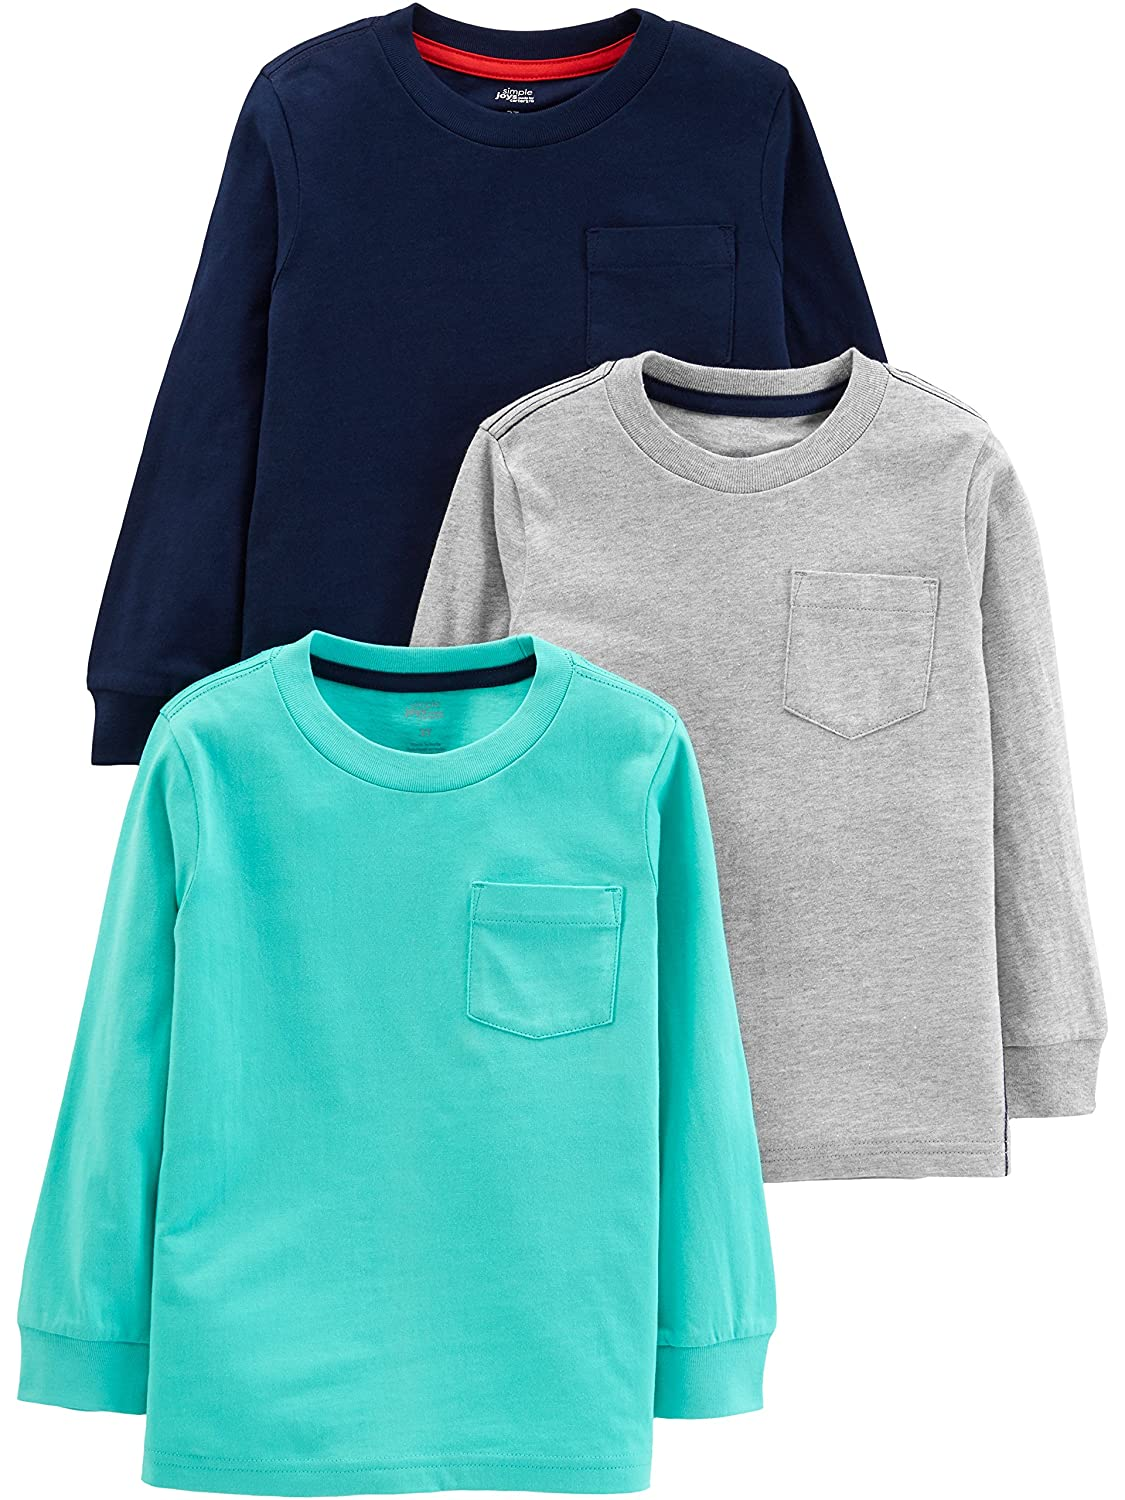 Simple Joys by Carters Toddler Boys 3-Pack Solid Pocket Long-Sleeve Tee Shirts